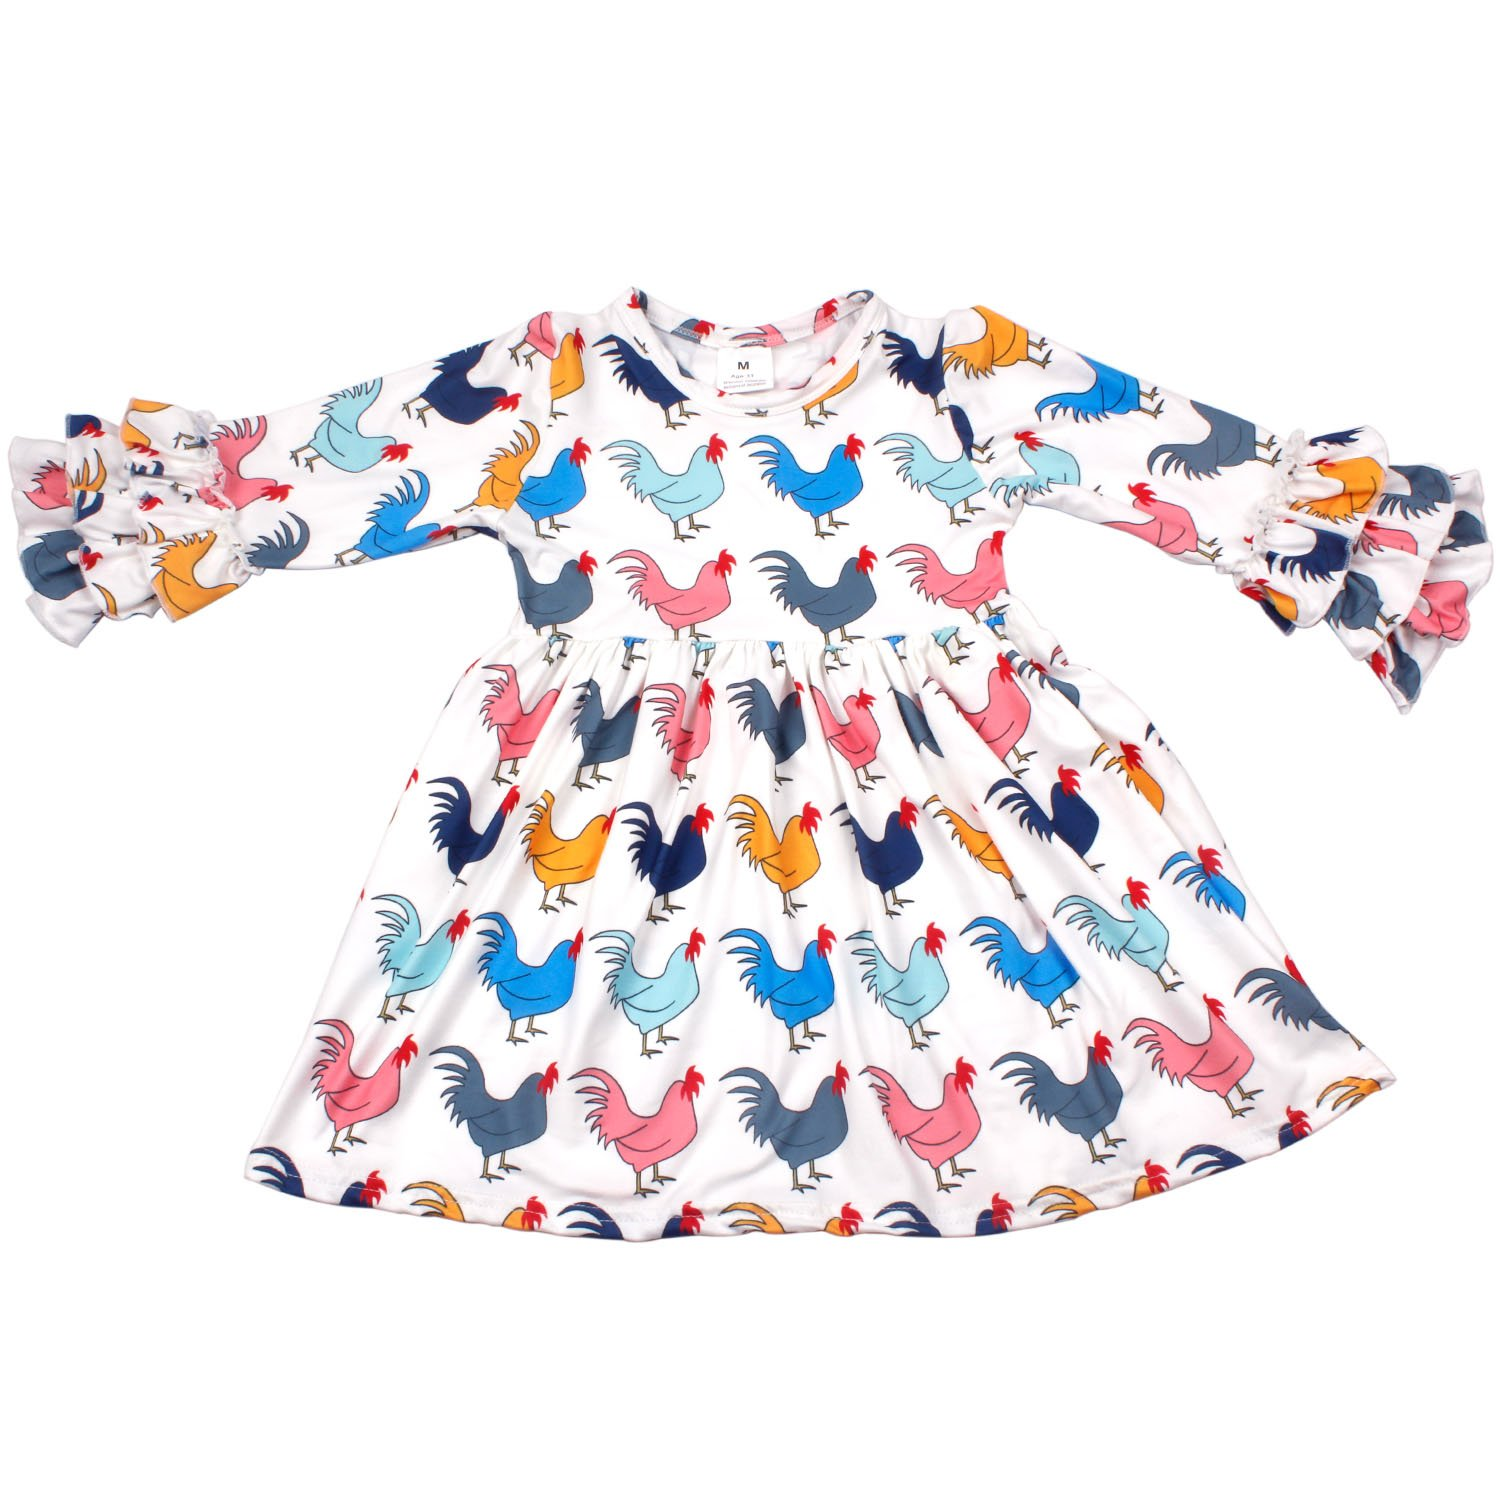 Qliyang Little Girls Chicken Print Cotton Long Sleeve Ruffle Dress Boutique Outfits